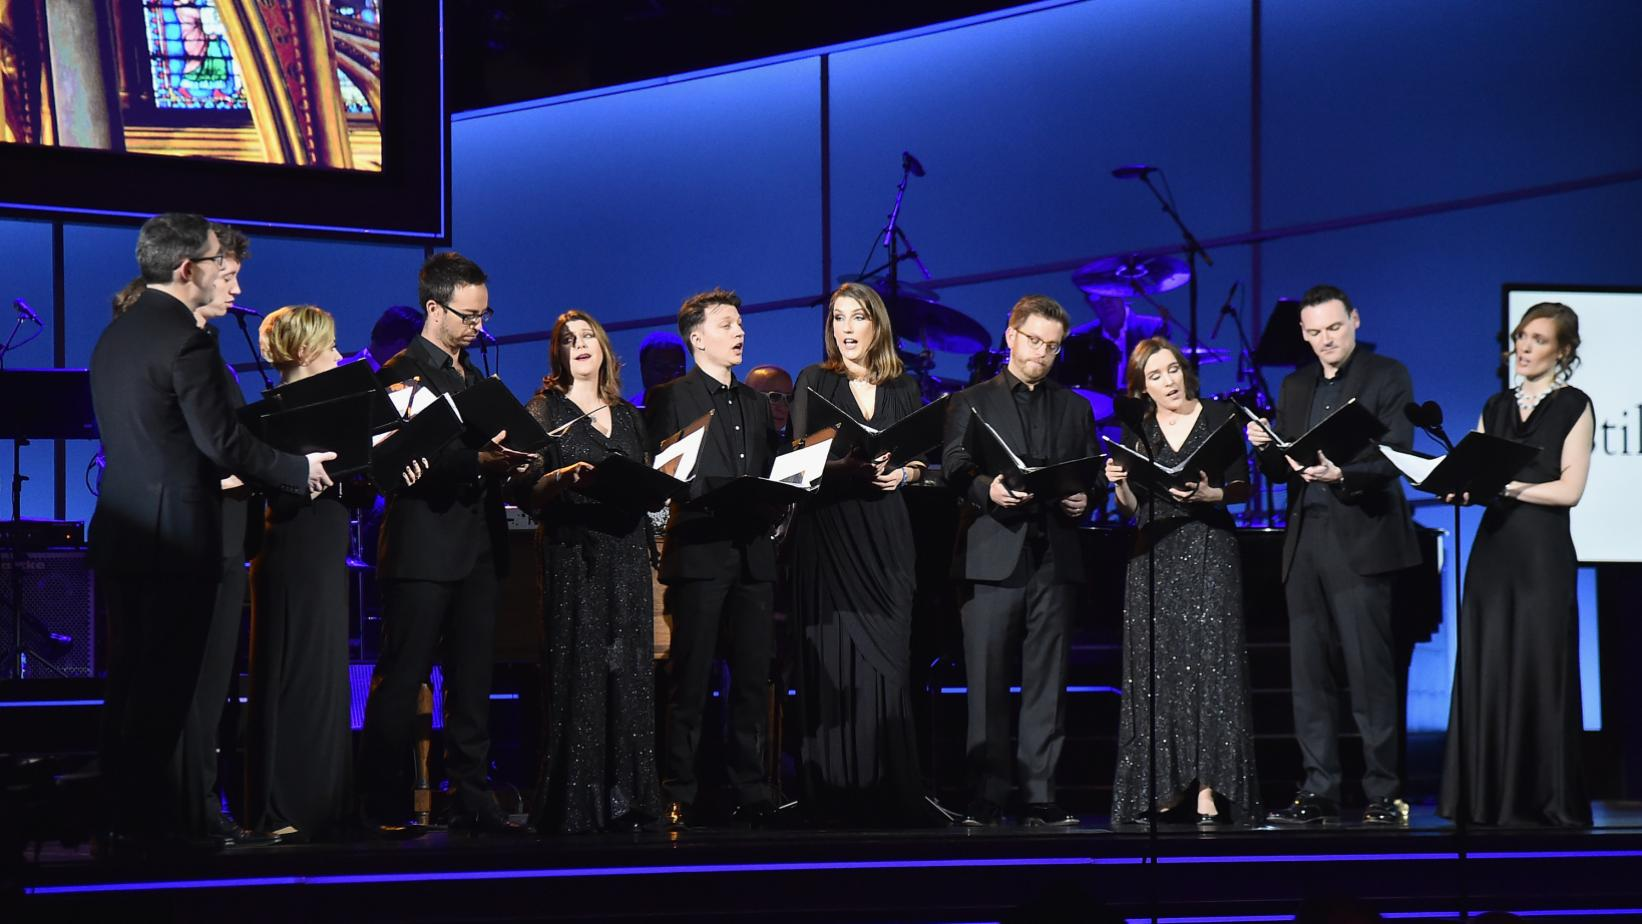 Stile Antico at the 60th GRAMMY Awards in 2018